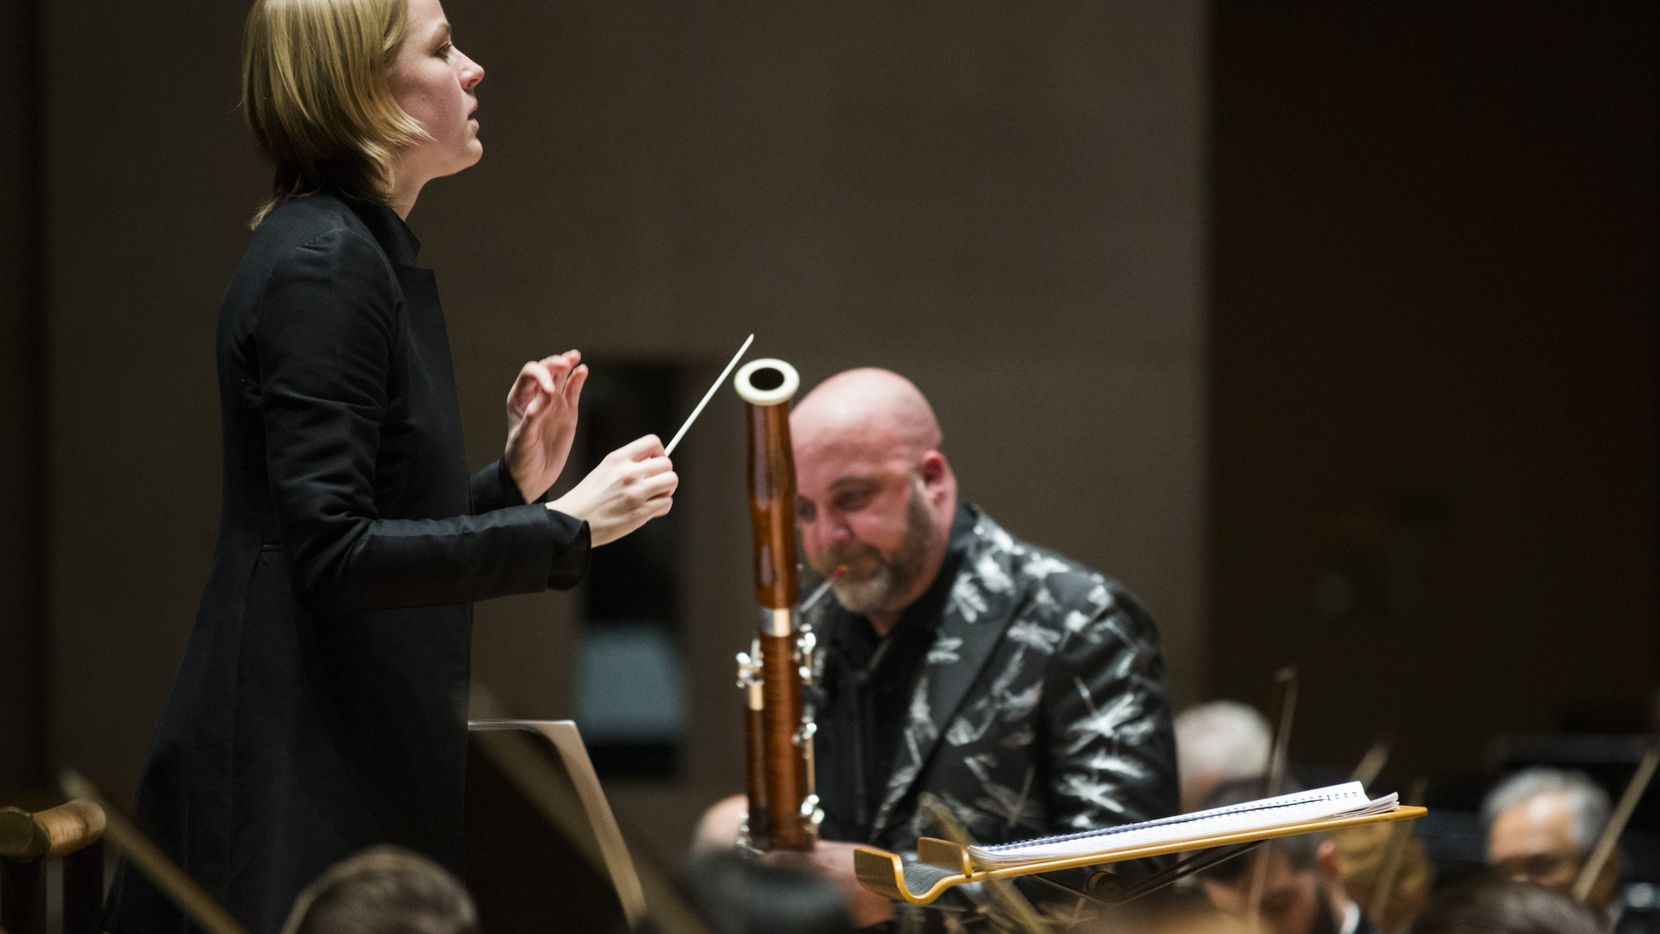 """Bassoon soloist Ted Soluri performs """"Ghost of the White Deer,"""" composed by Jerod Tate, with Ruth Reinhardt conducting the Dallas Symphony Orchestra on Feb. 13, 2020 at the Meyerson Symphony Center in Dallas."""